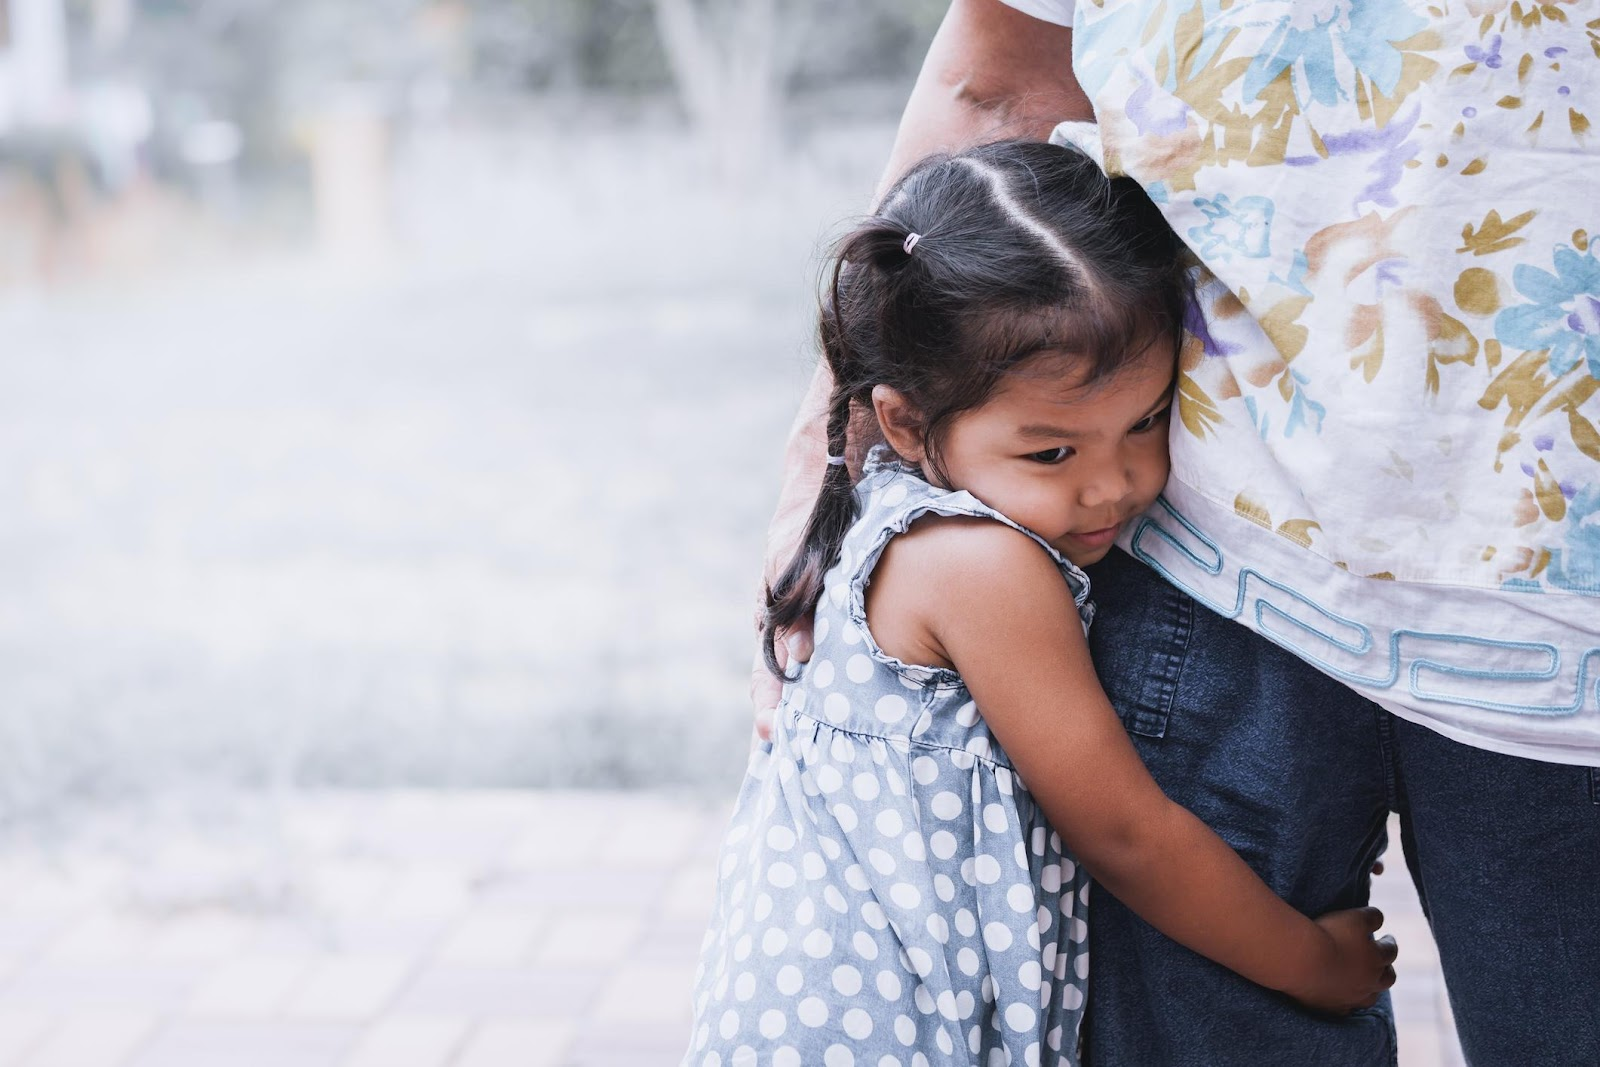 A child clinging to a parent is a sign of social anxiety